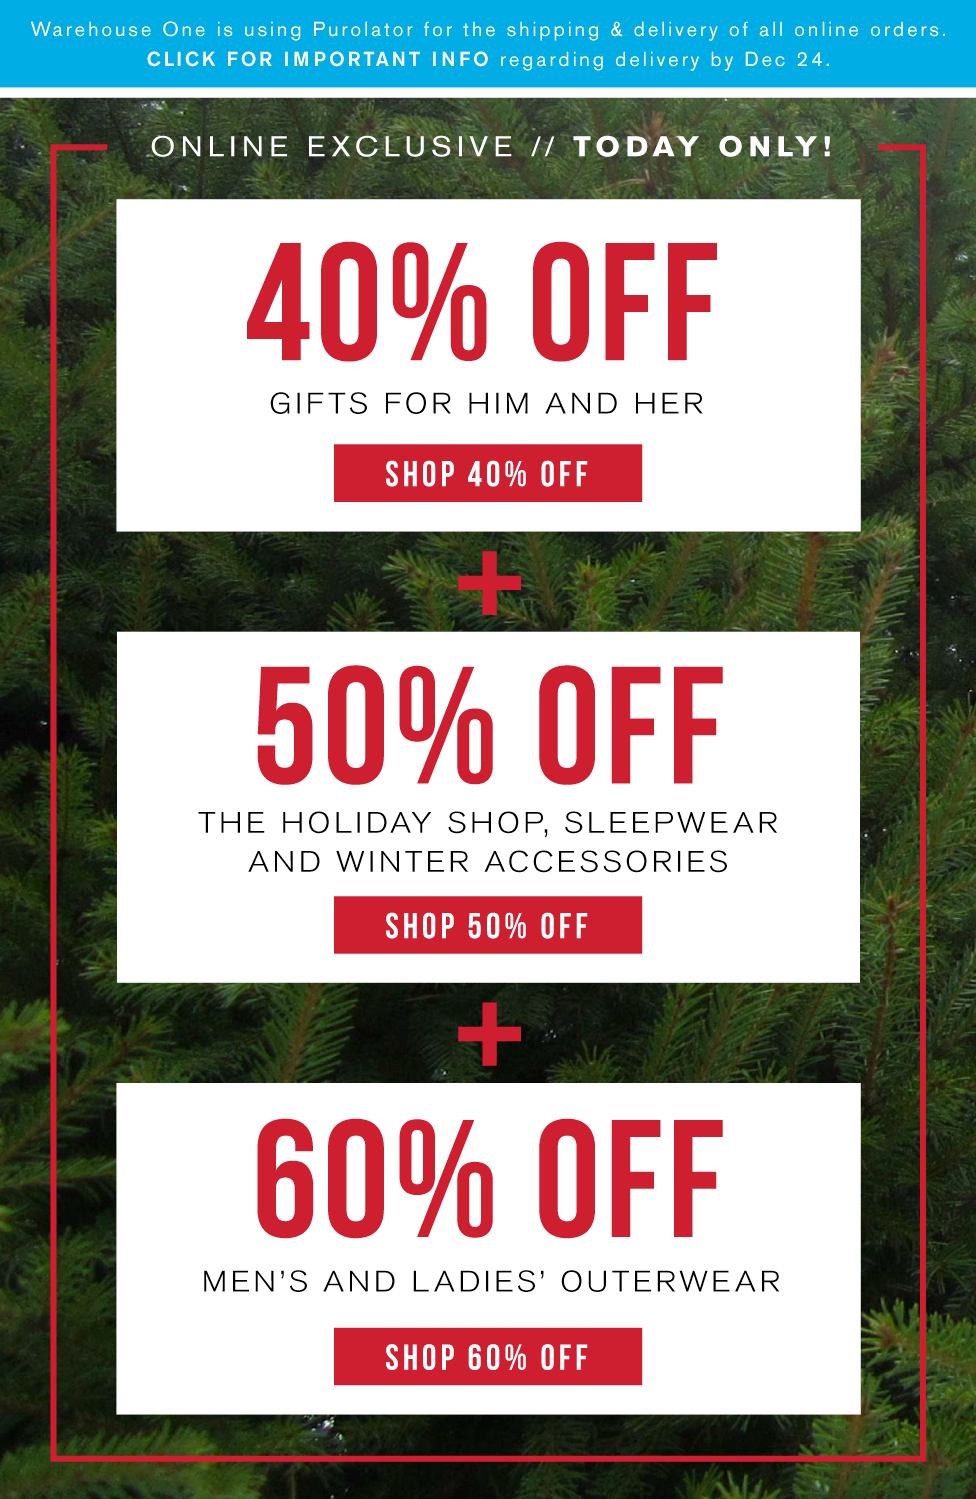 ONLINE EXCLUSIVE TODAY ONLY! 40% off gifts + 50% off holiday, sleep and winter accessories + 60% off outerwear